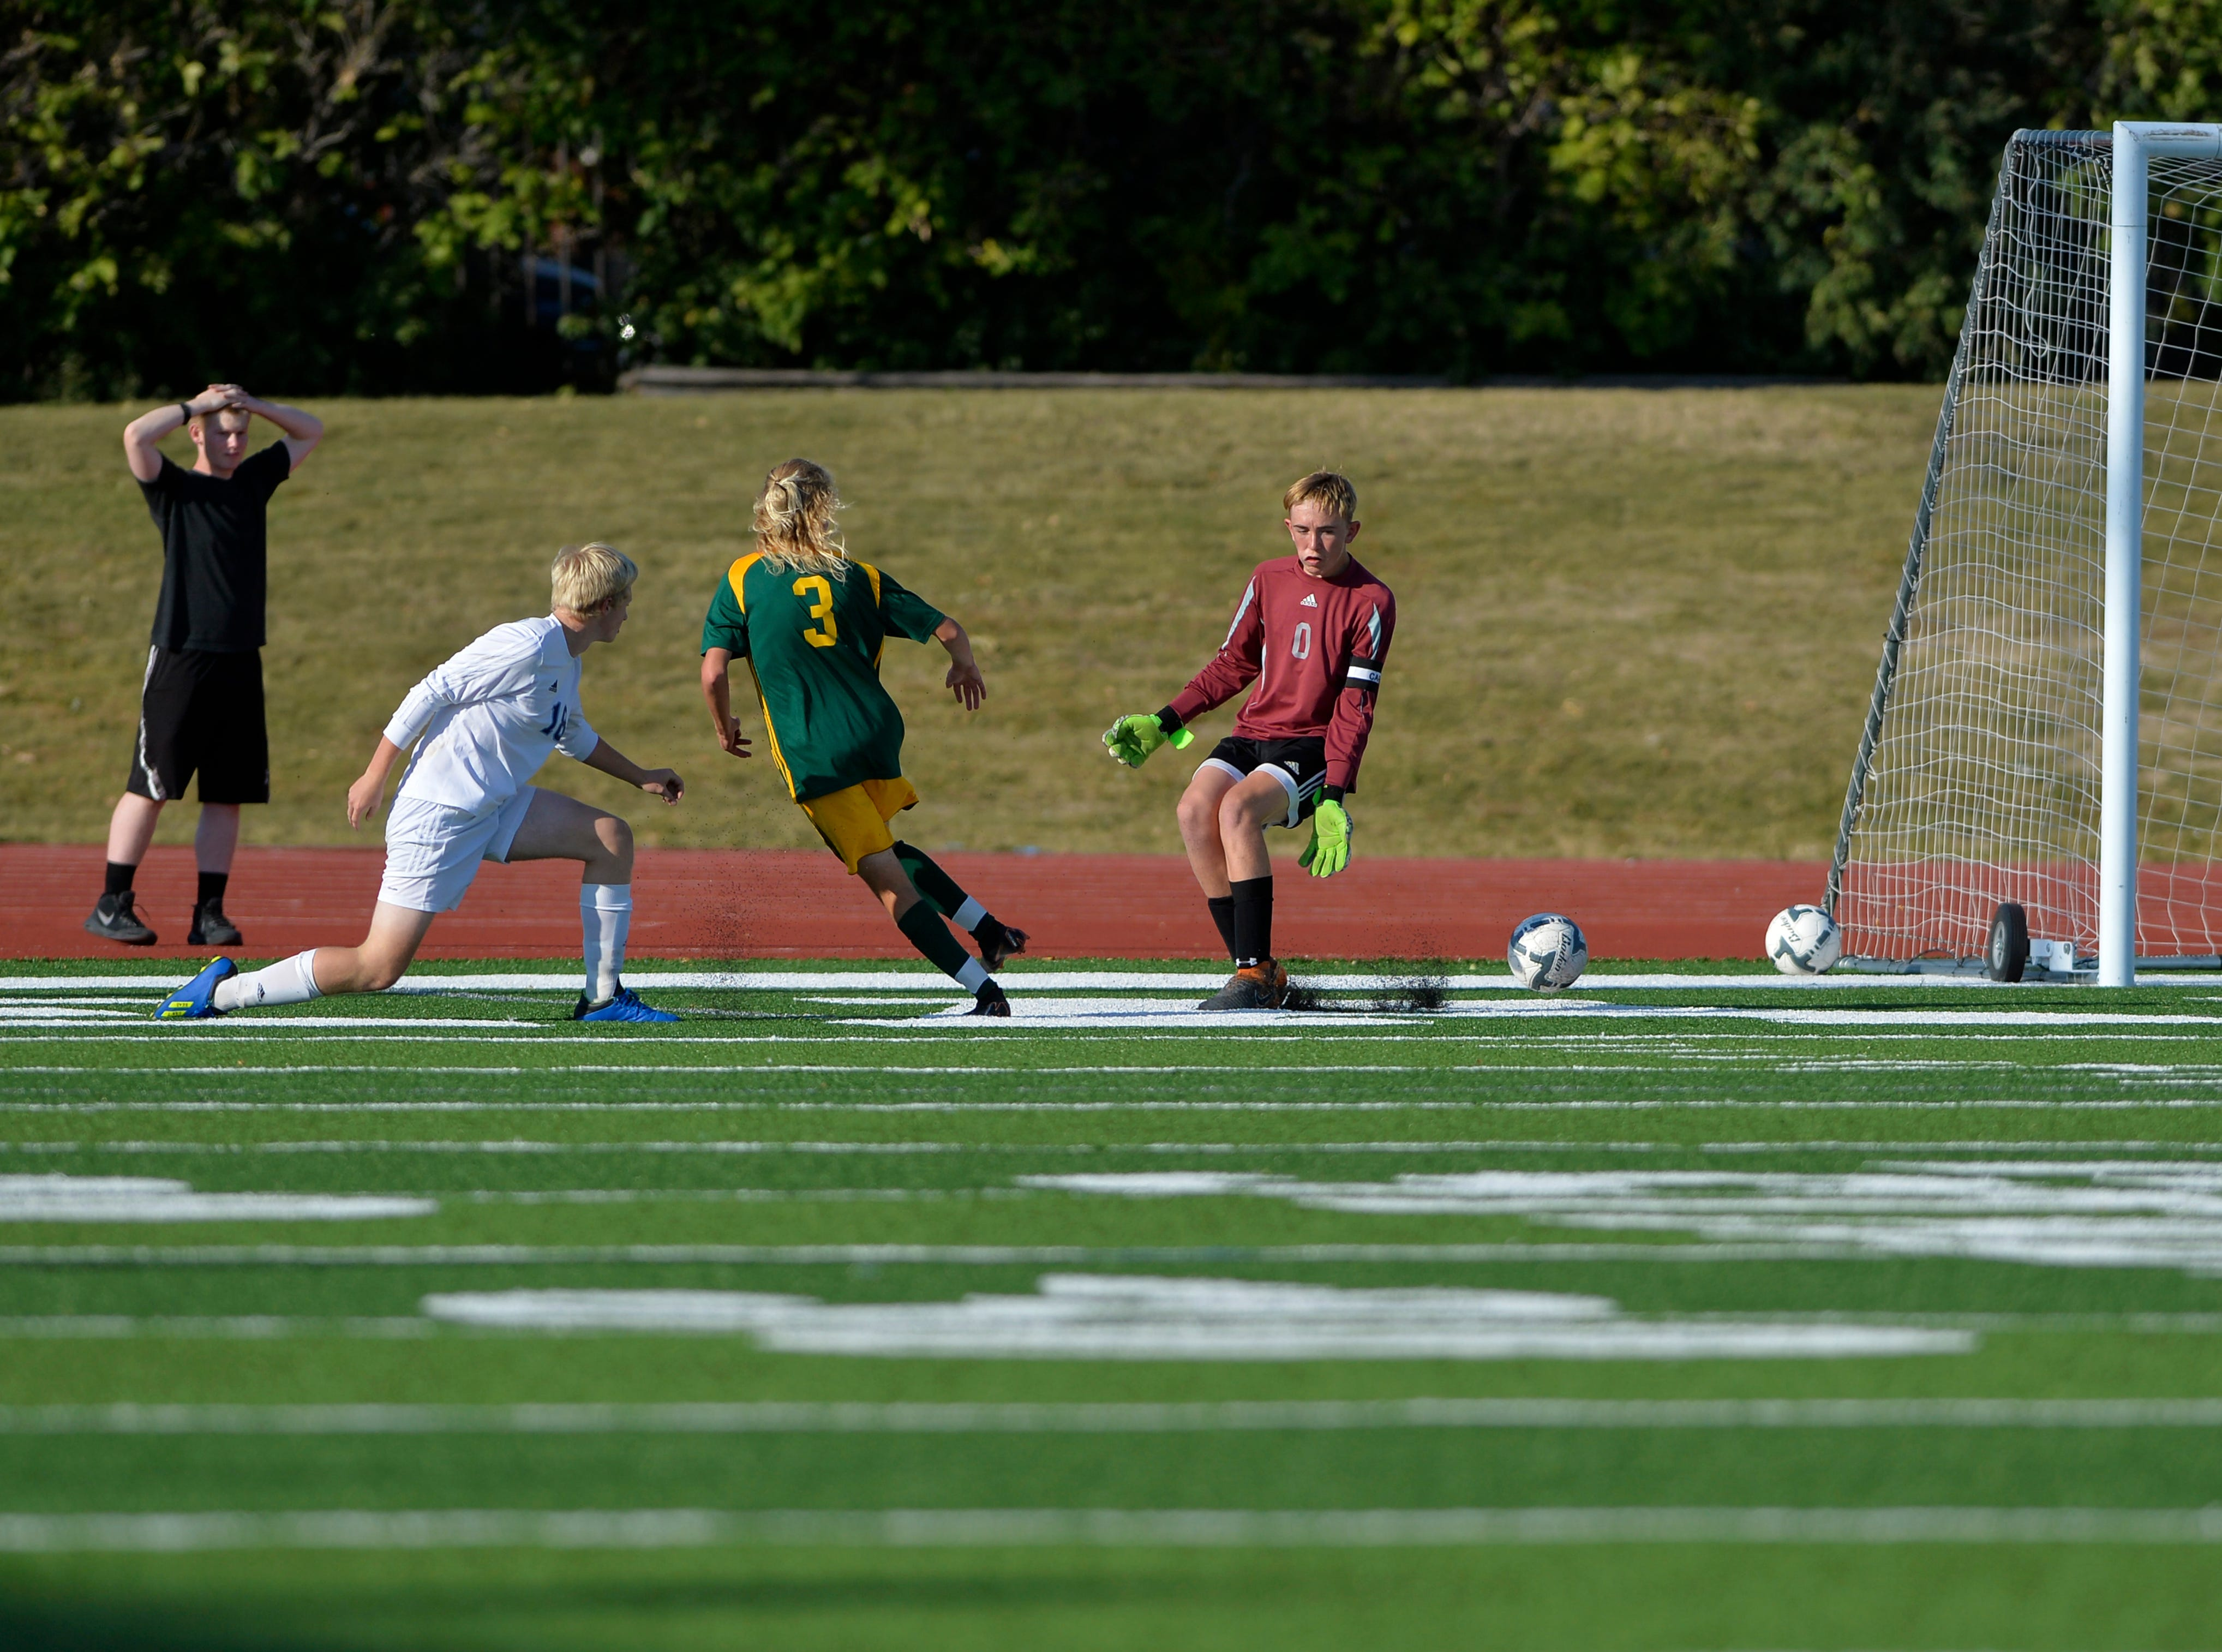 CMR's Ward Cereck, 3, slips the ball passed Great Falls High goal keeper Liam Toner for the first goal in the crosstown soccer match at Memorial Stadium, Thursday, Sept. 6, 2018.